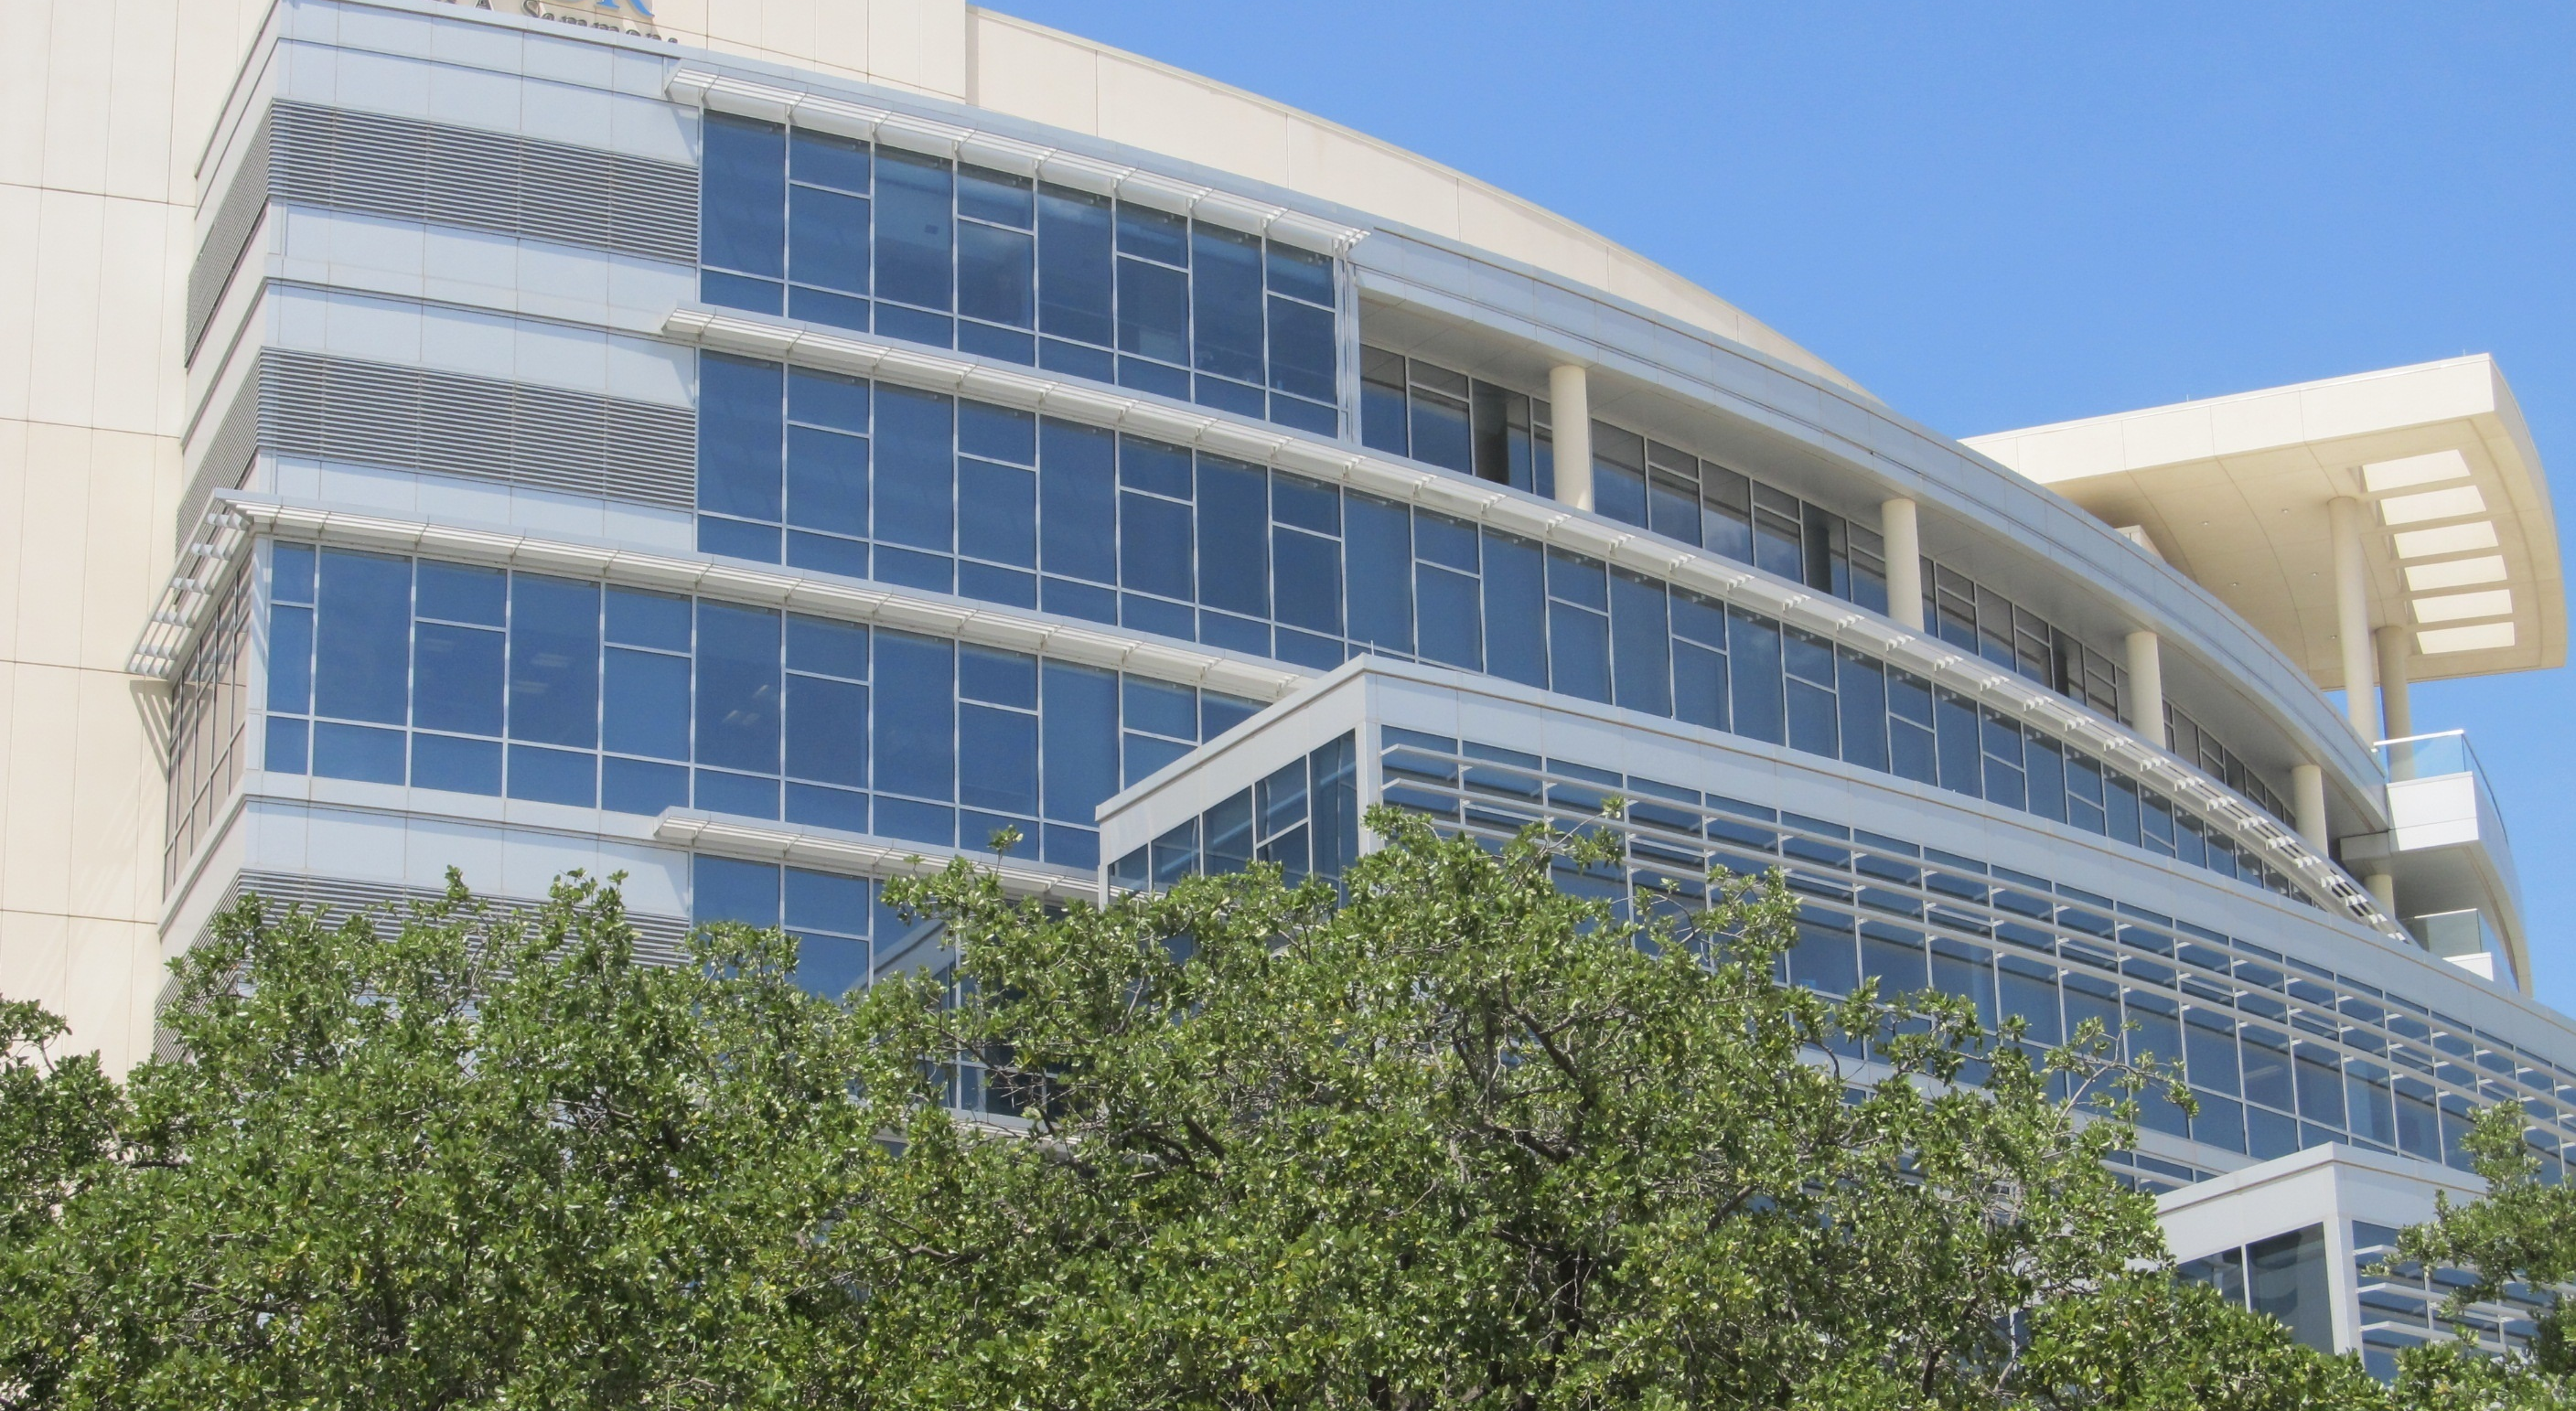 Kaiser Permanente A Leader In Green Building & Sustainability